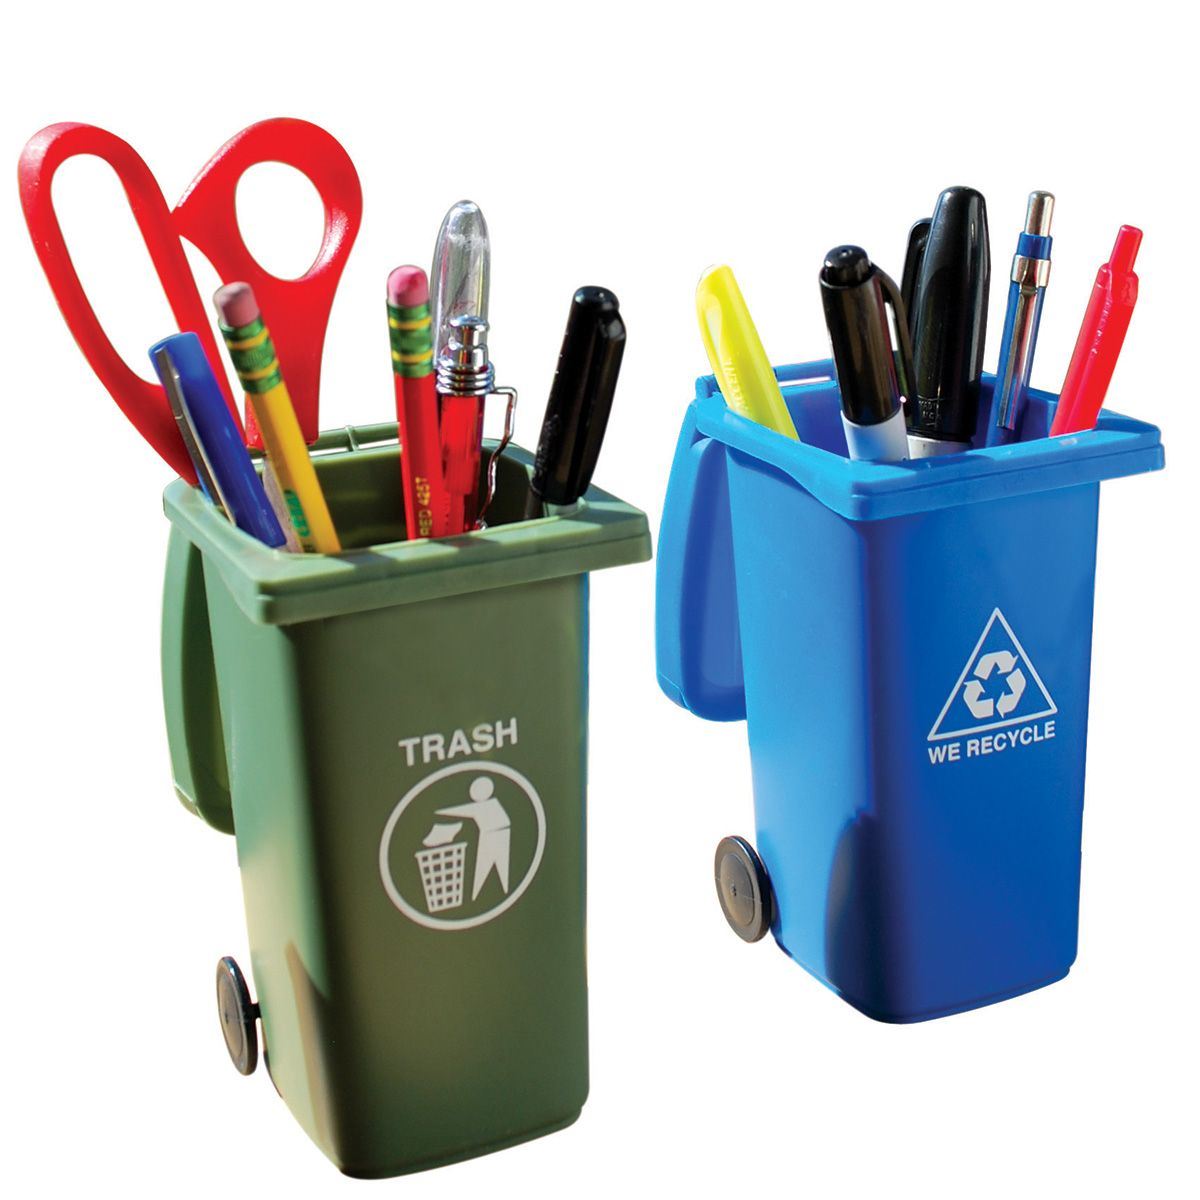 Trash And Recycling Can Pencil Holders Novelty Office Supplies Retroplanet Keep Your Desk Organized Entertain Visitors With Cool